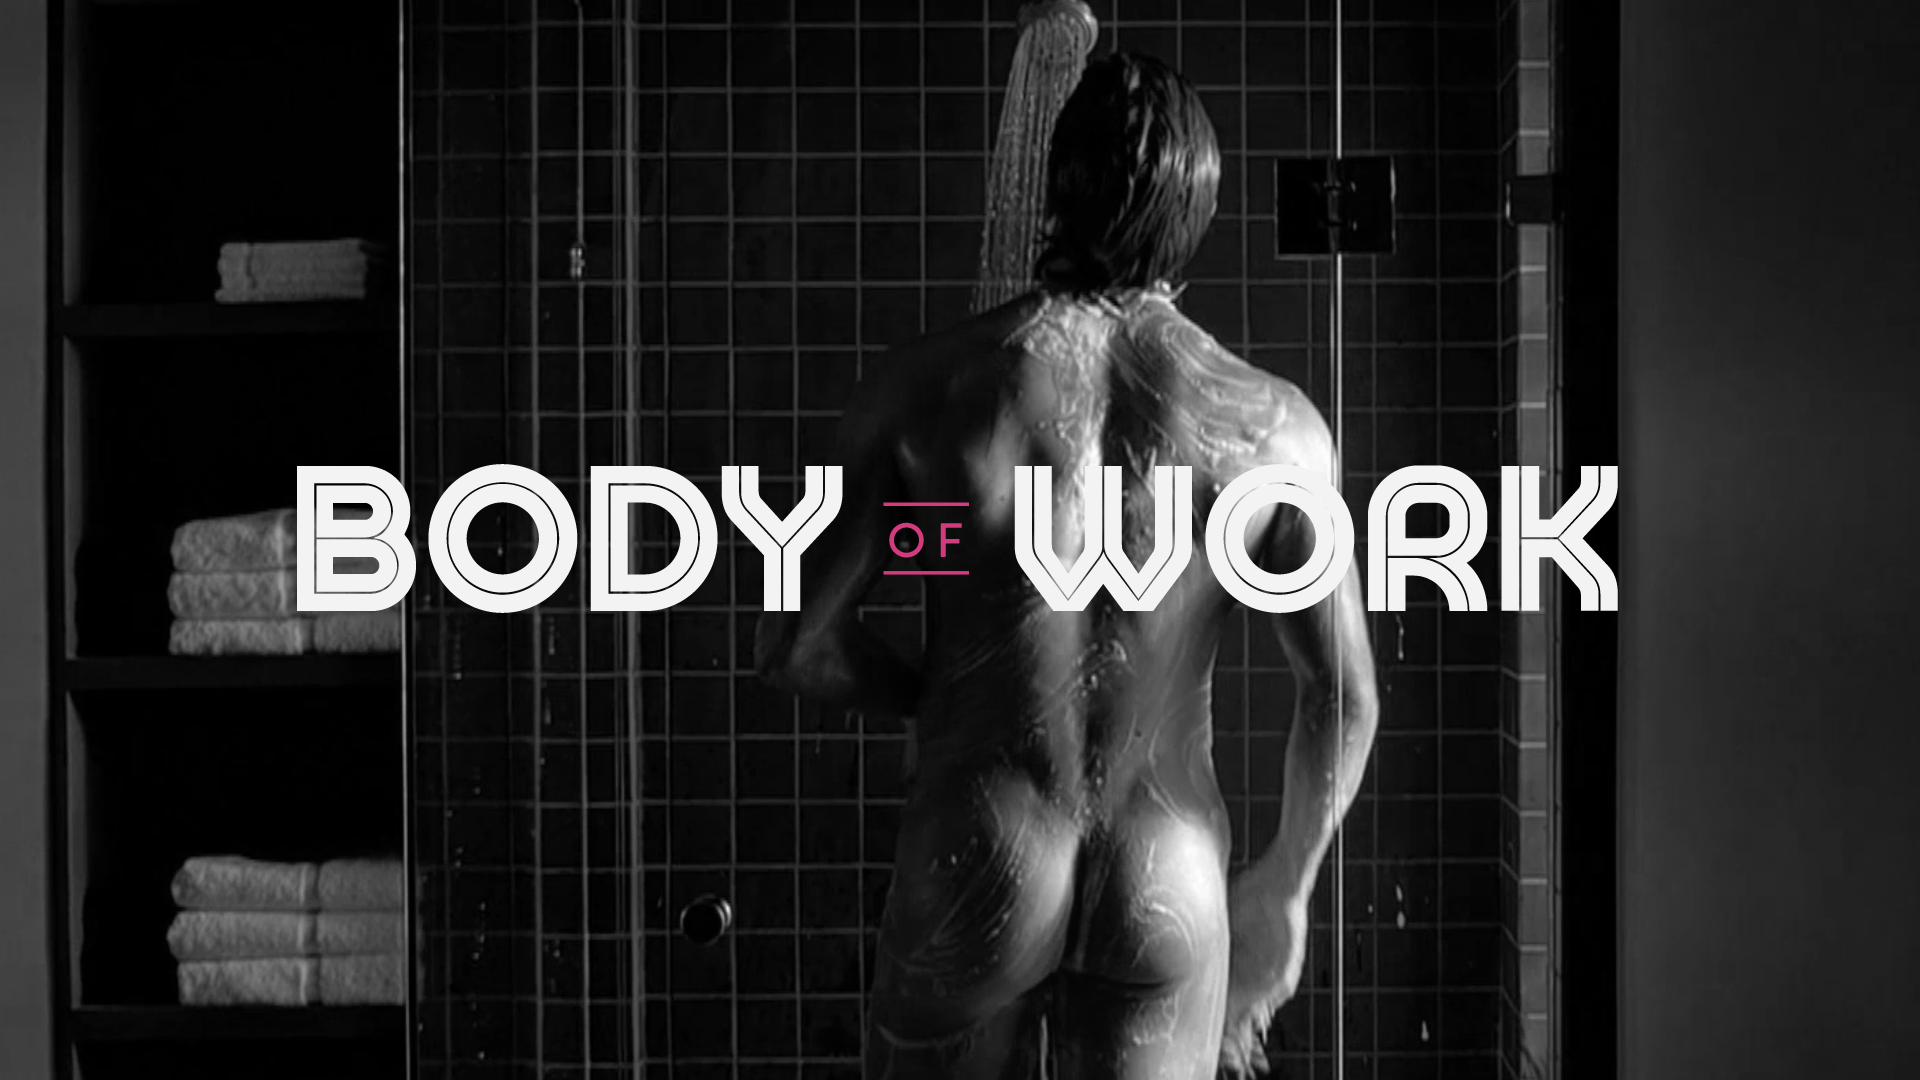 Bodyofwork actor 00 00 03 29 still002 nude preview image